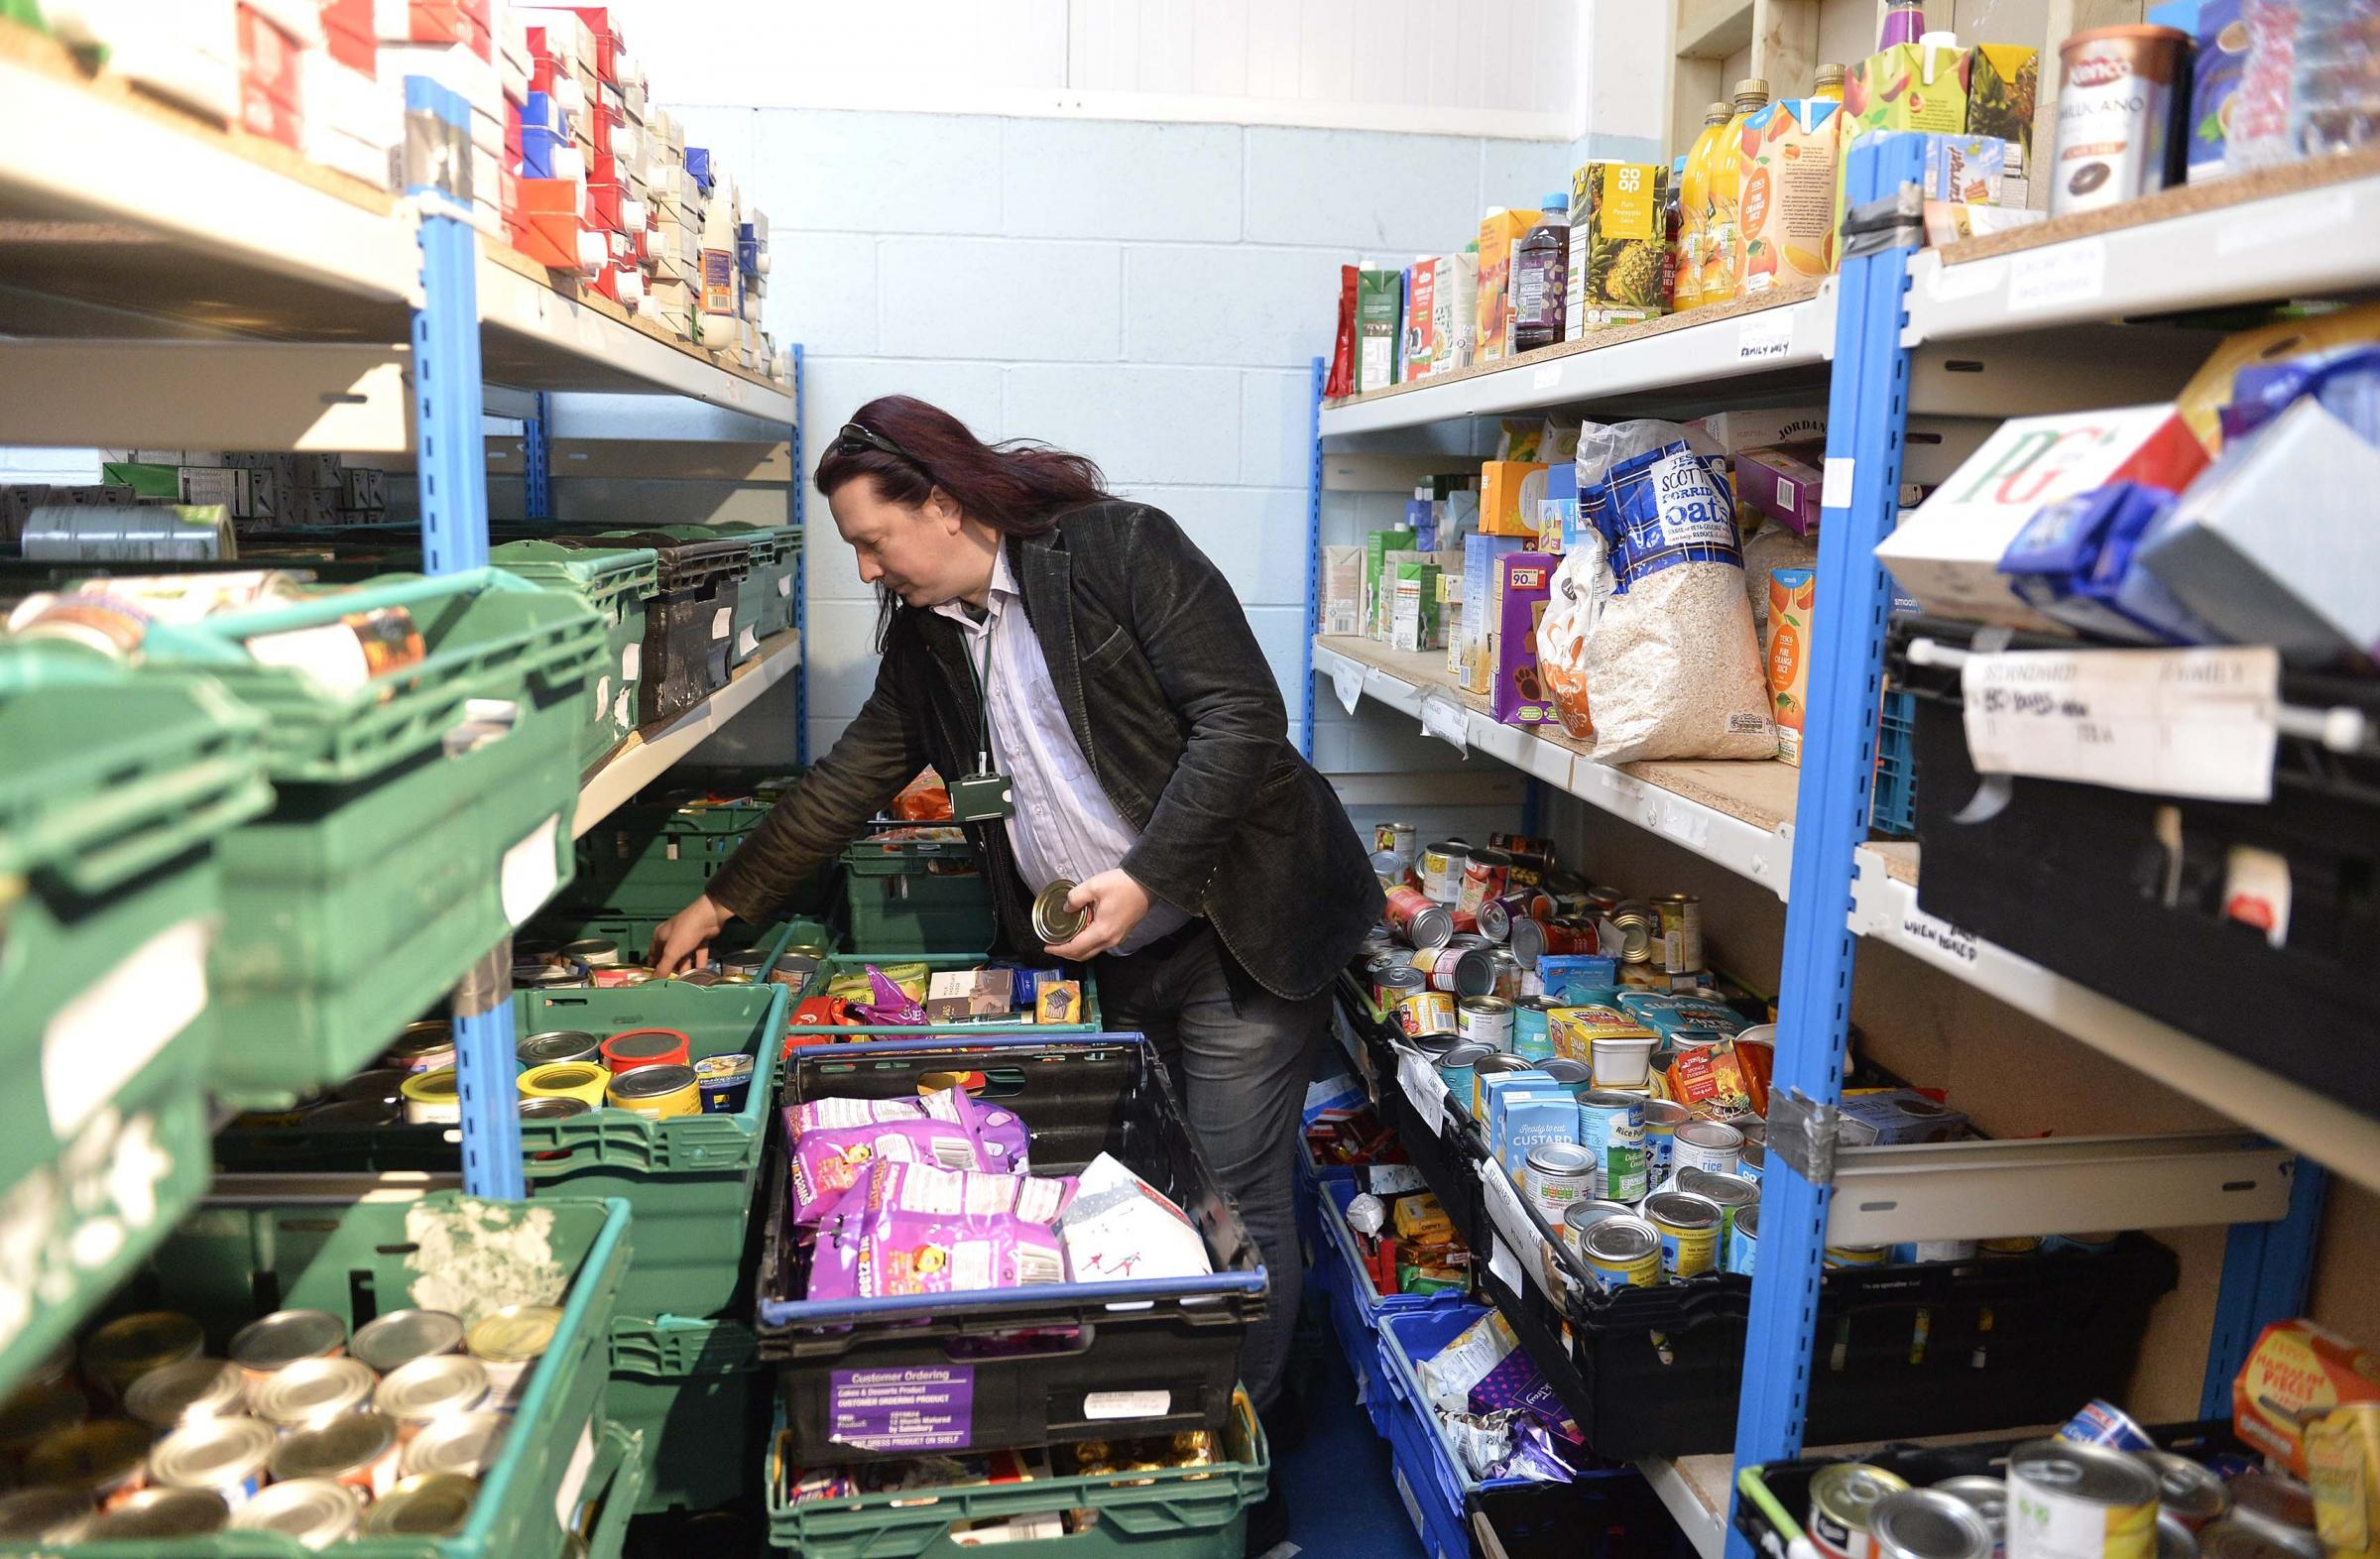 Unpredictable - Colchester Foodbank manager Michael Beckett says poverty can affect anyone